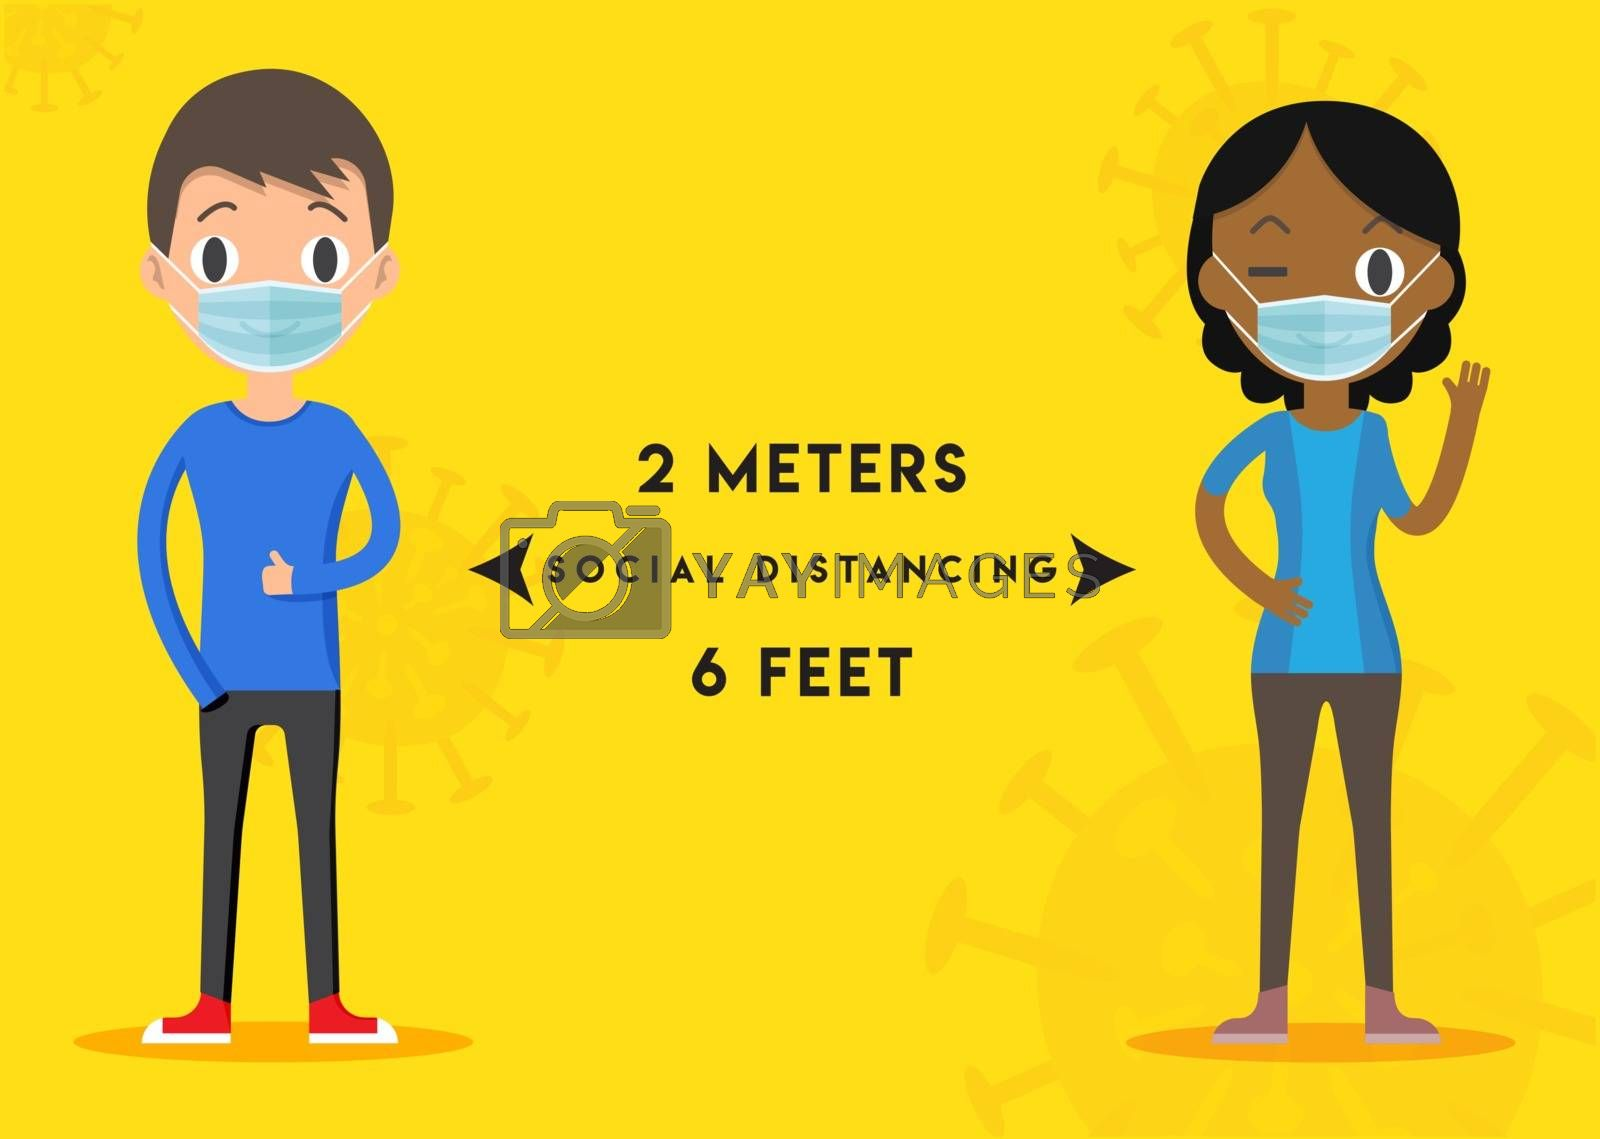 Keep Distance Sign. Coronovirus Epidemic Protective Equipment. Preventive measures. Steps to protect yourself. Keep the 2 meters Distance. Vector illustration.